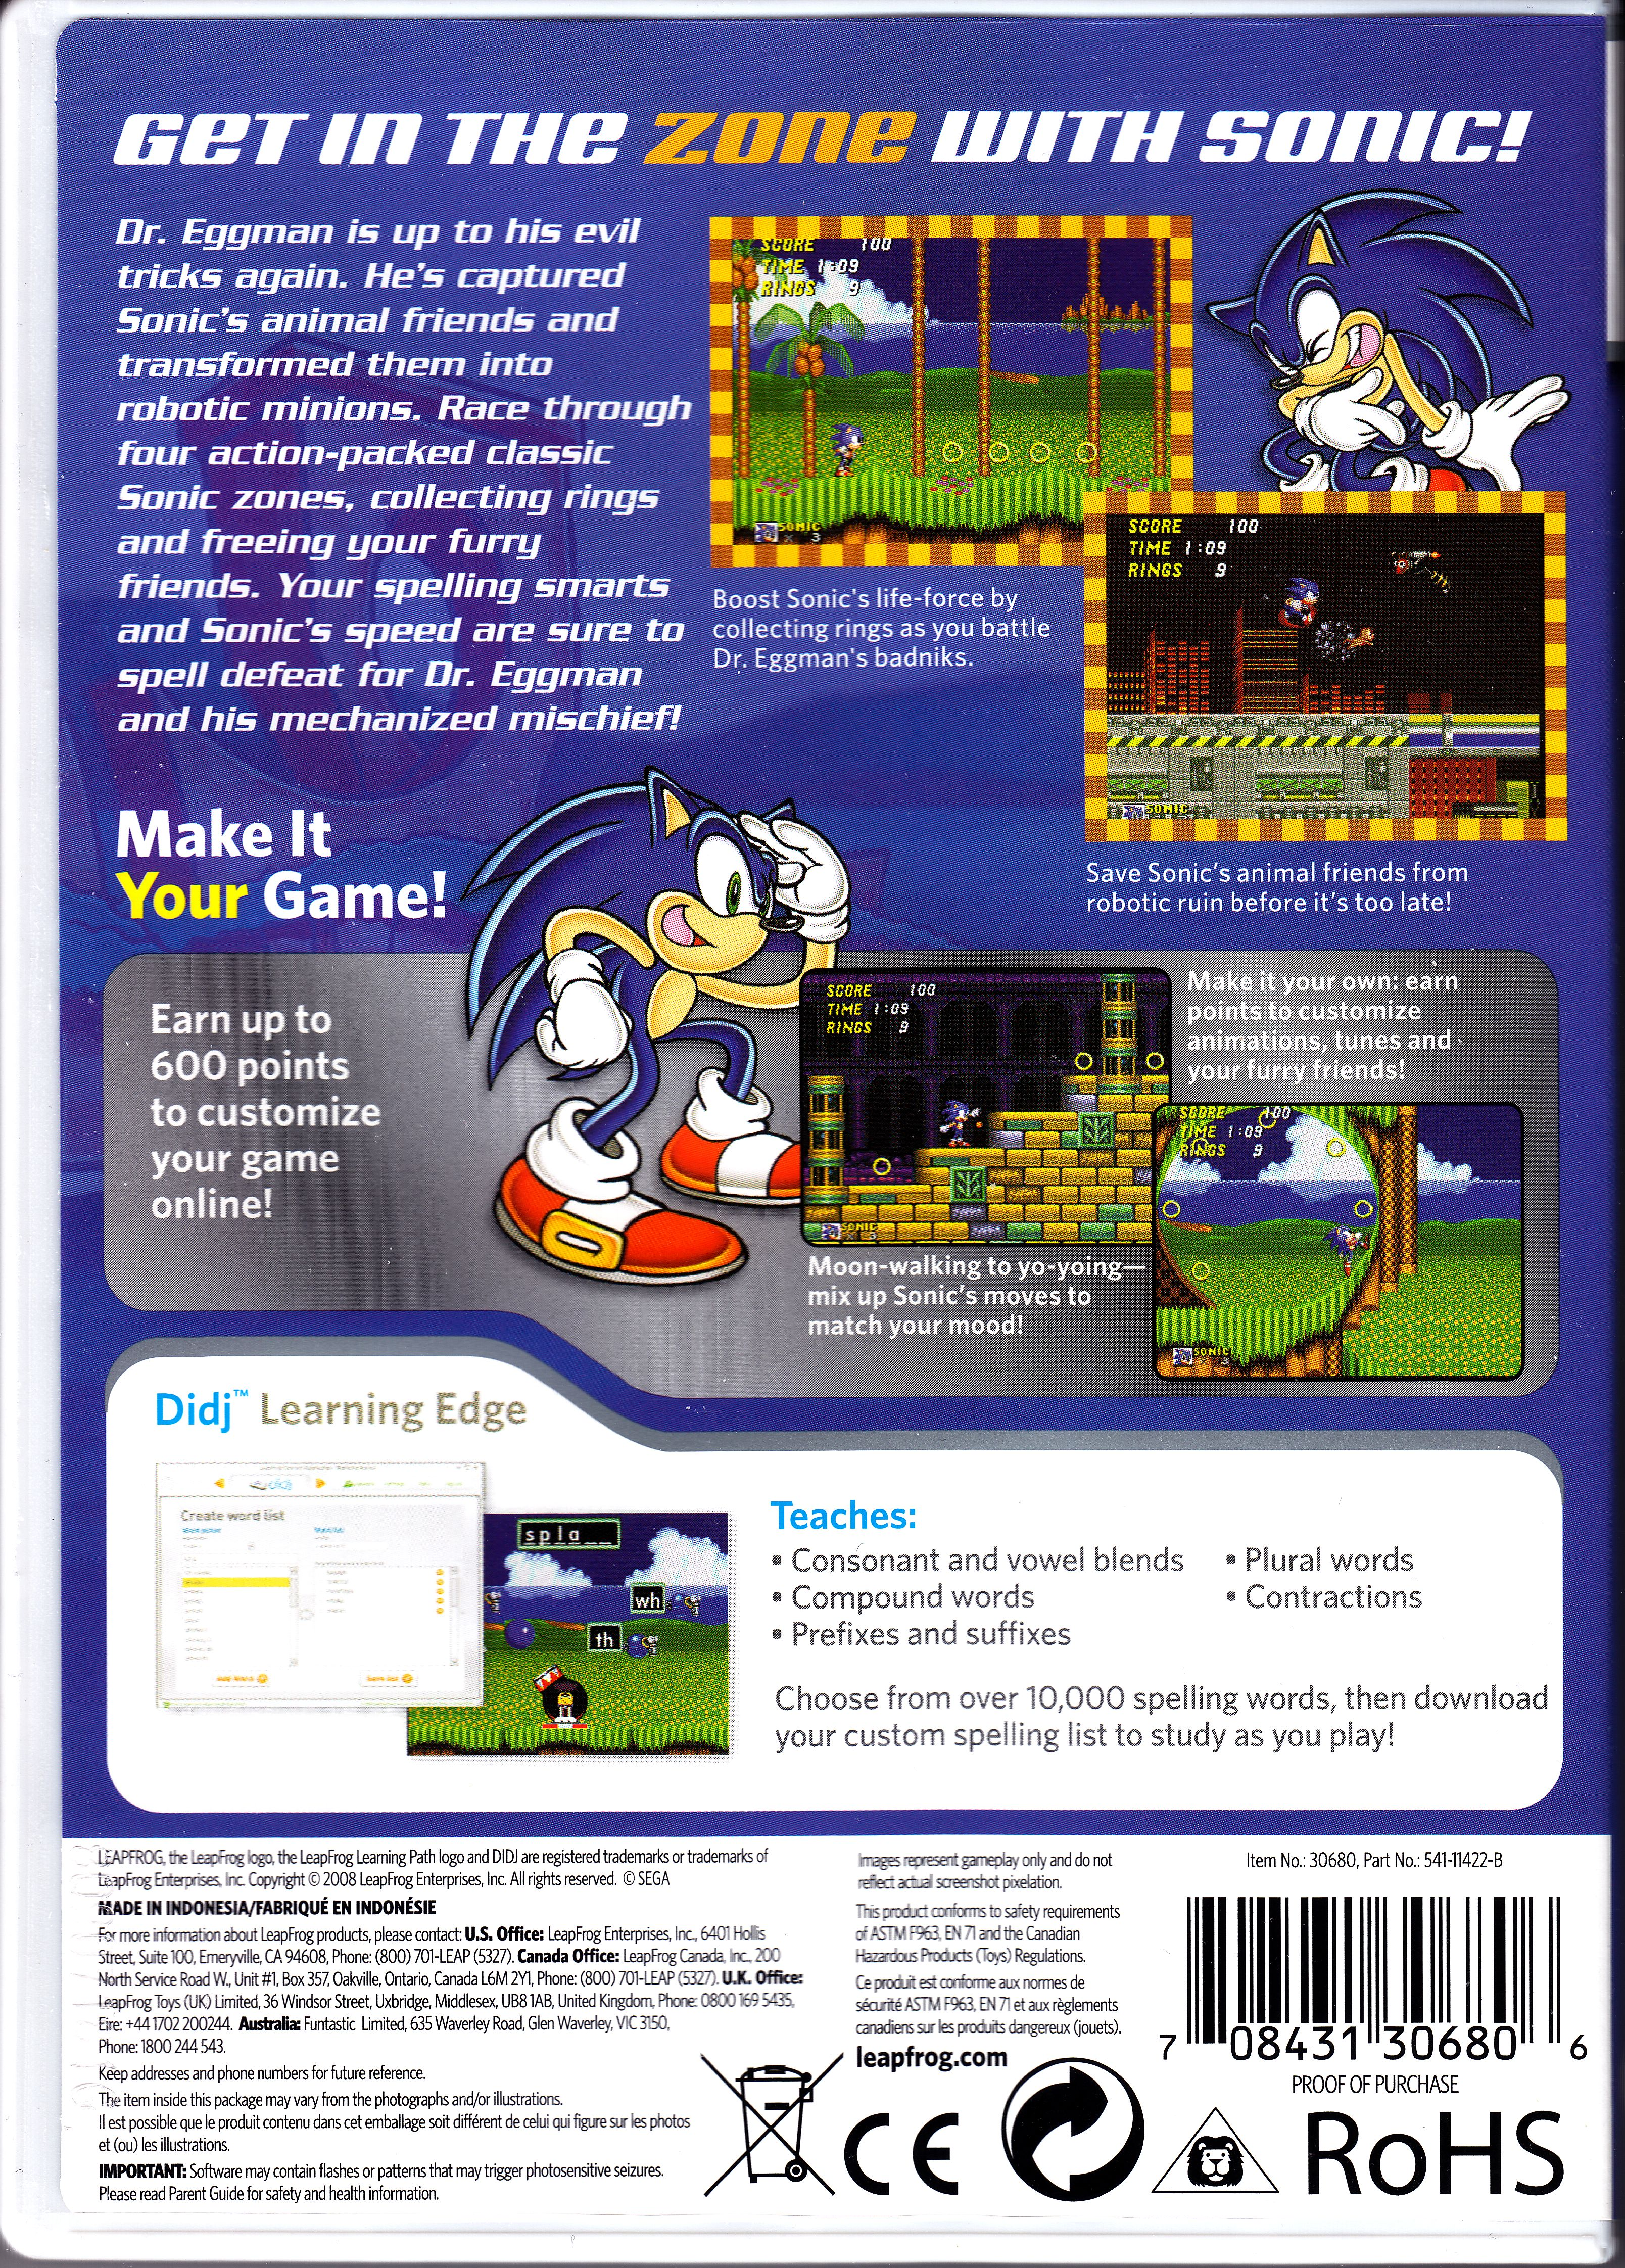 name front cover back cover indiana jones sonic the hedgehog